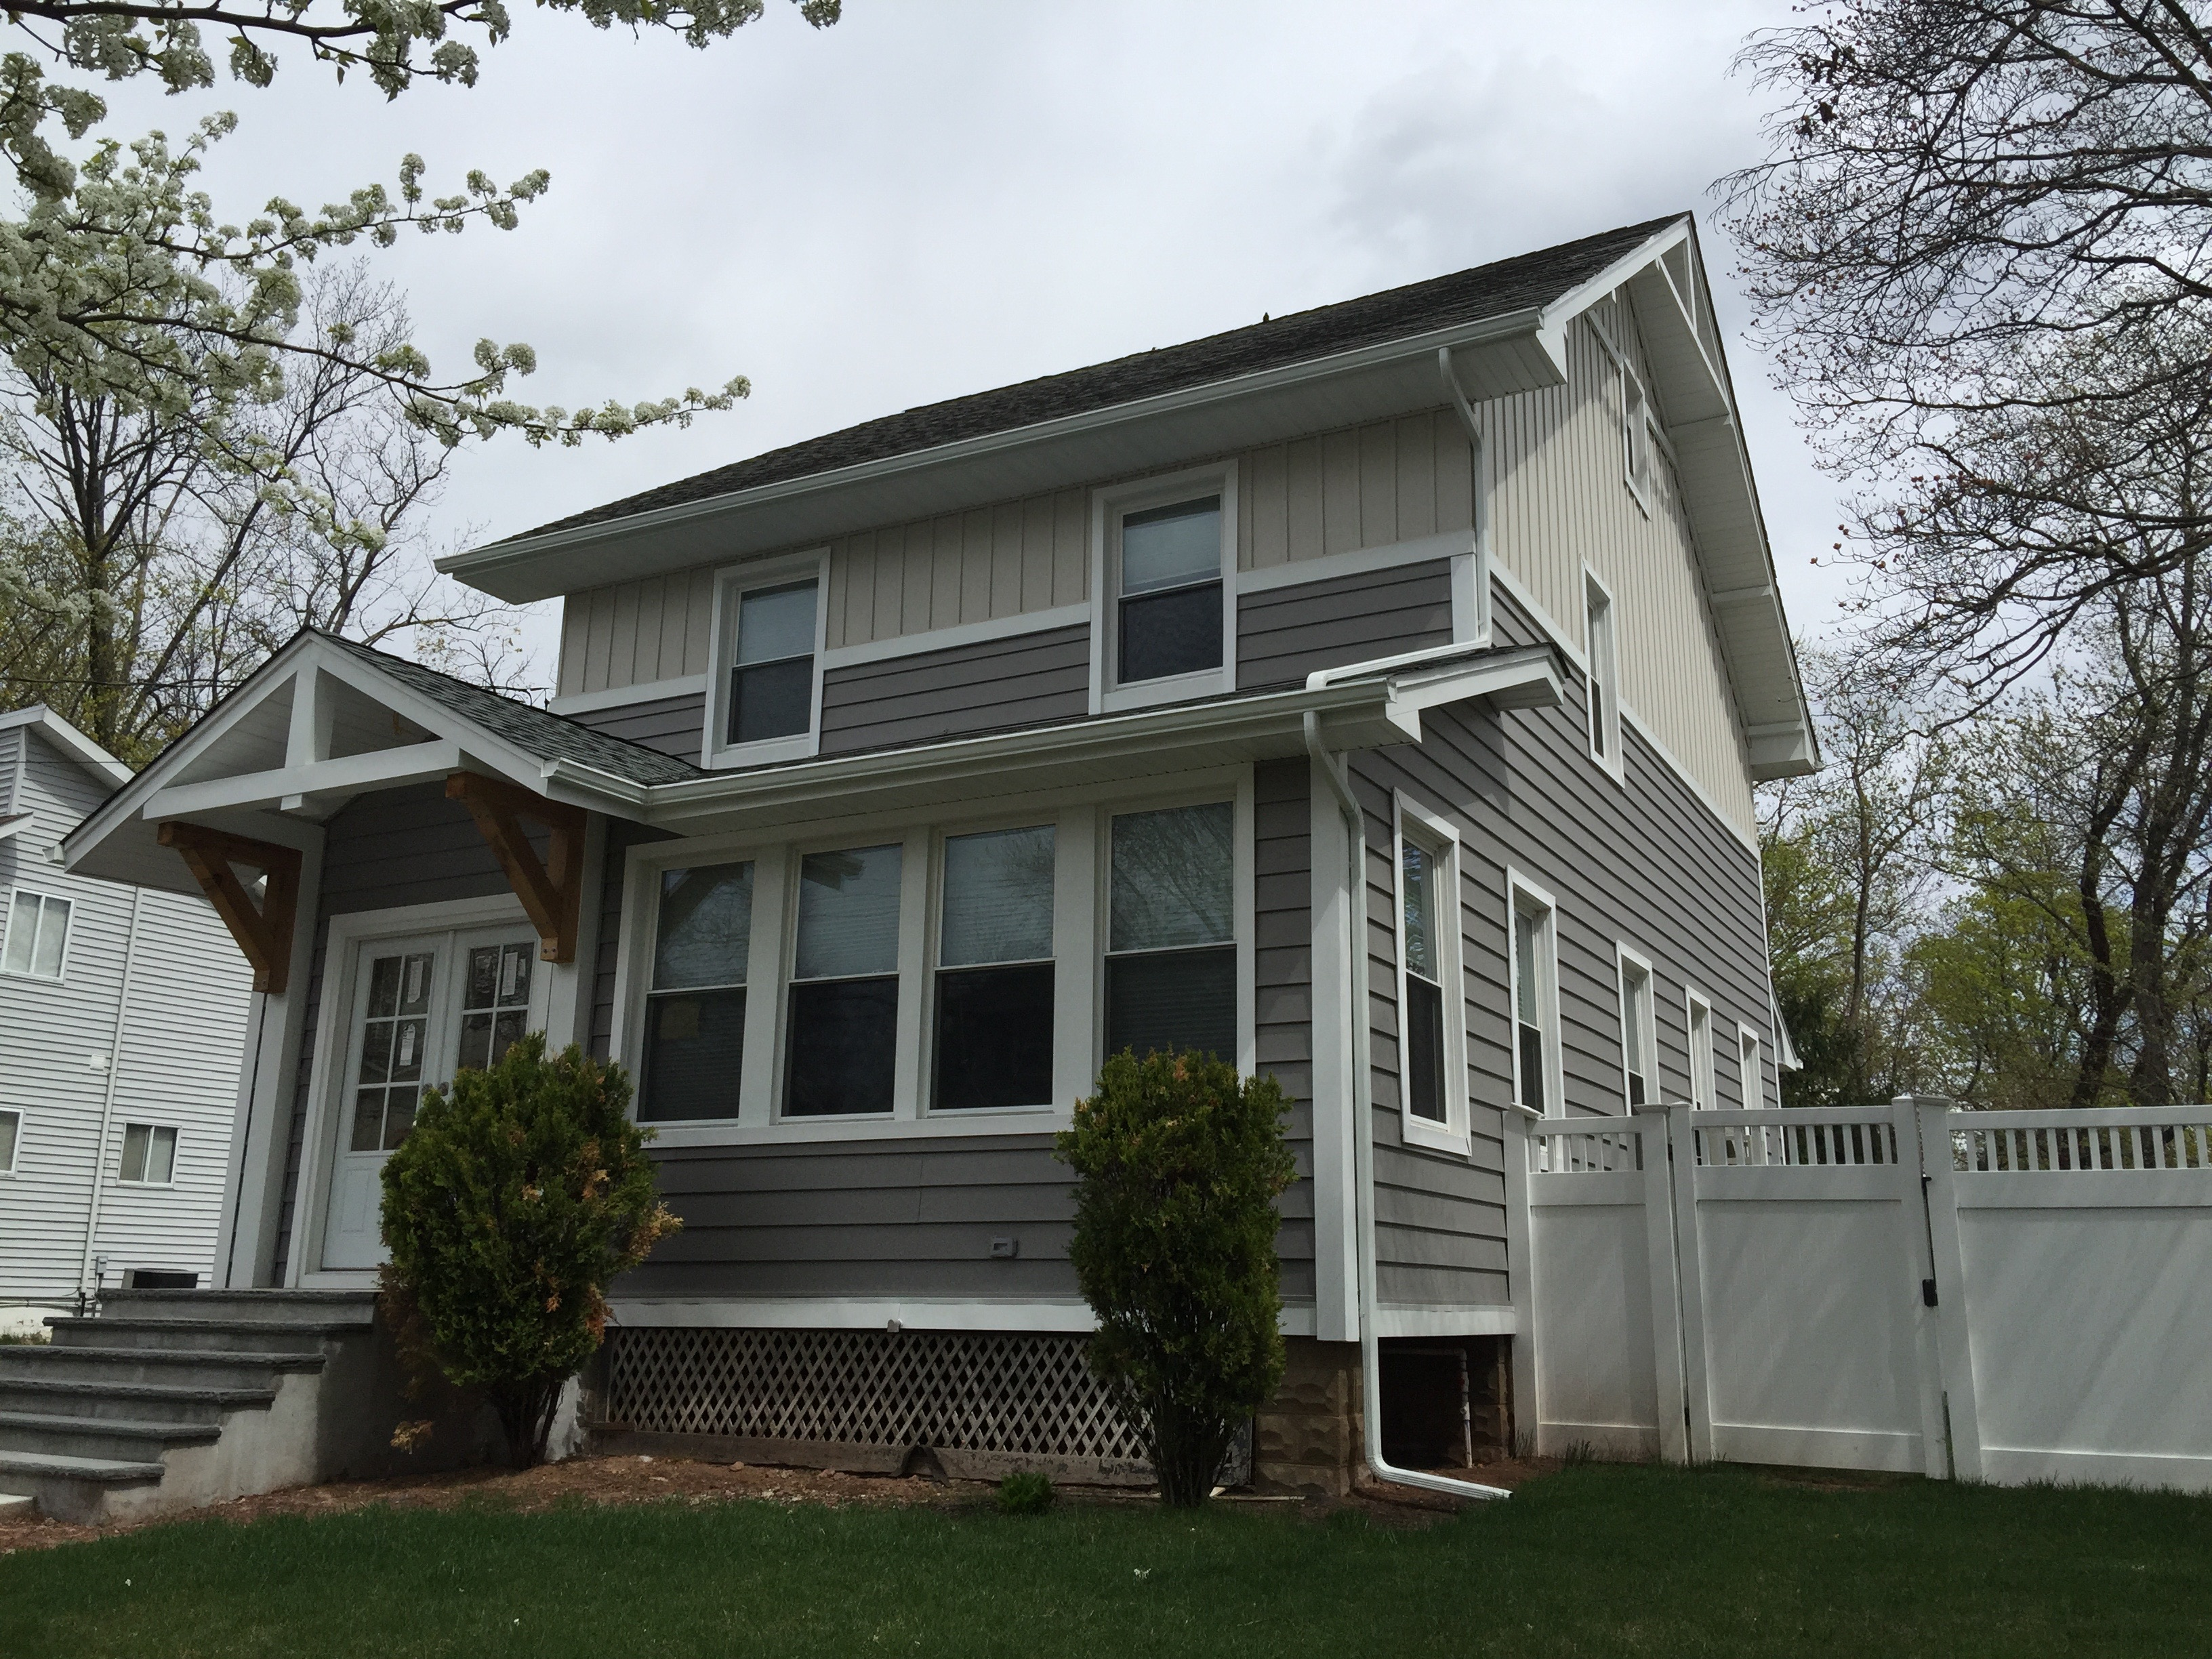 residence home siding colors 973 487 3704 wayne nj home remodeling